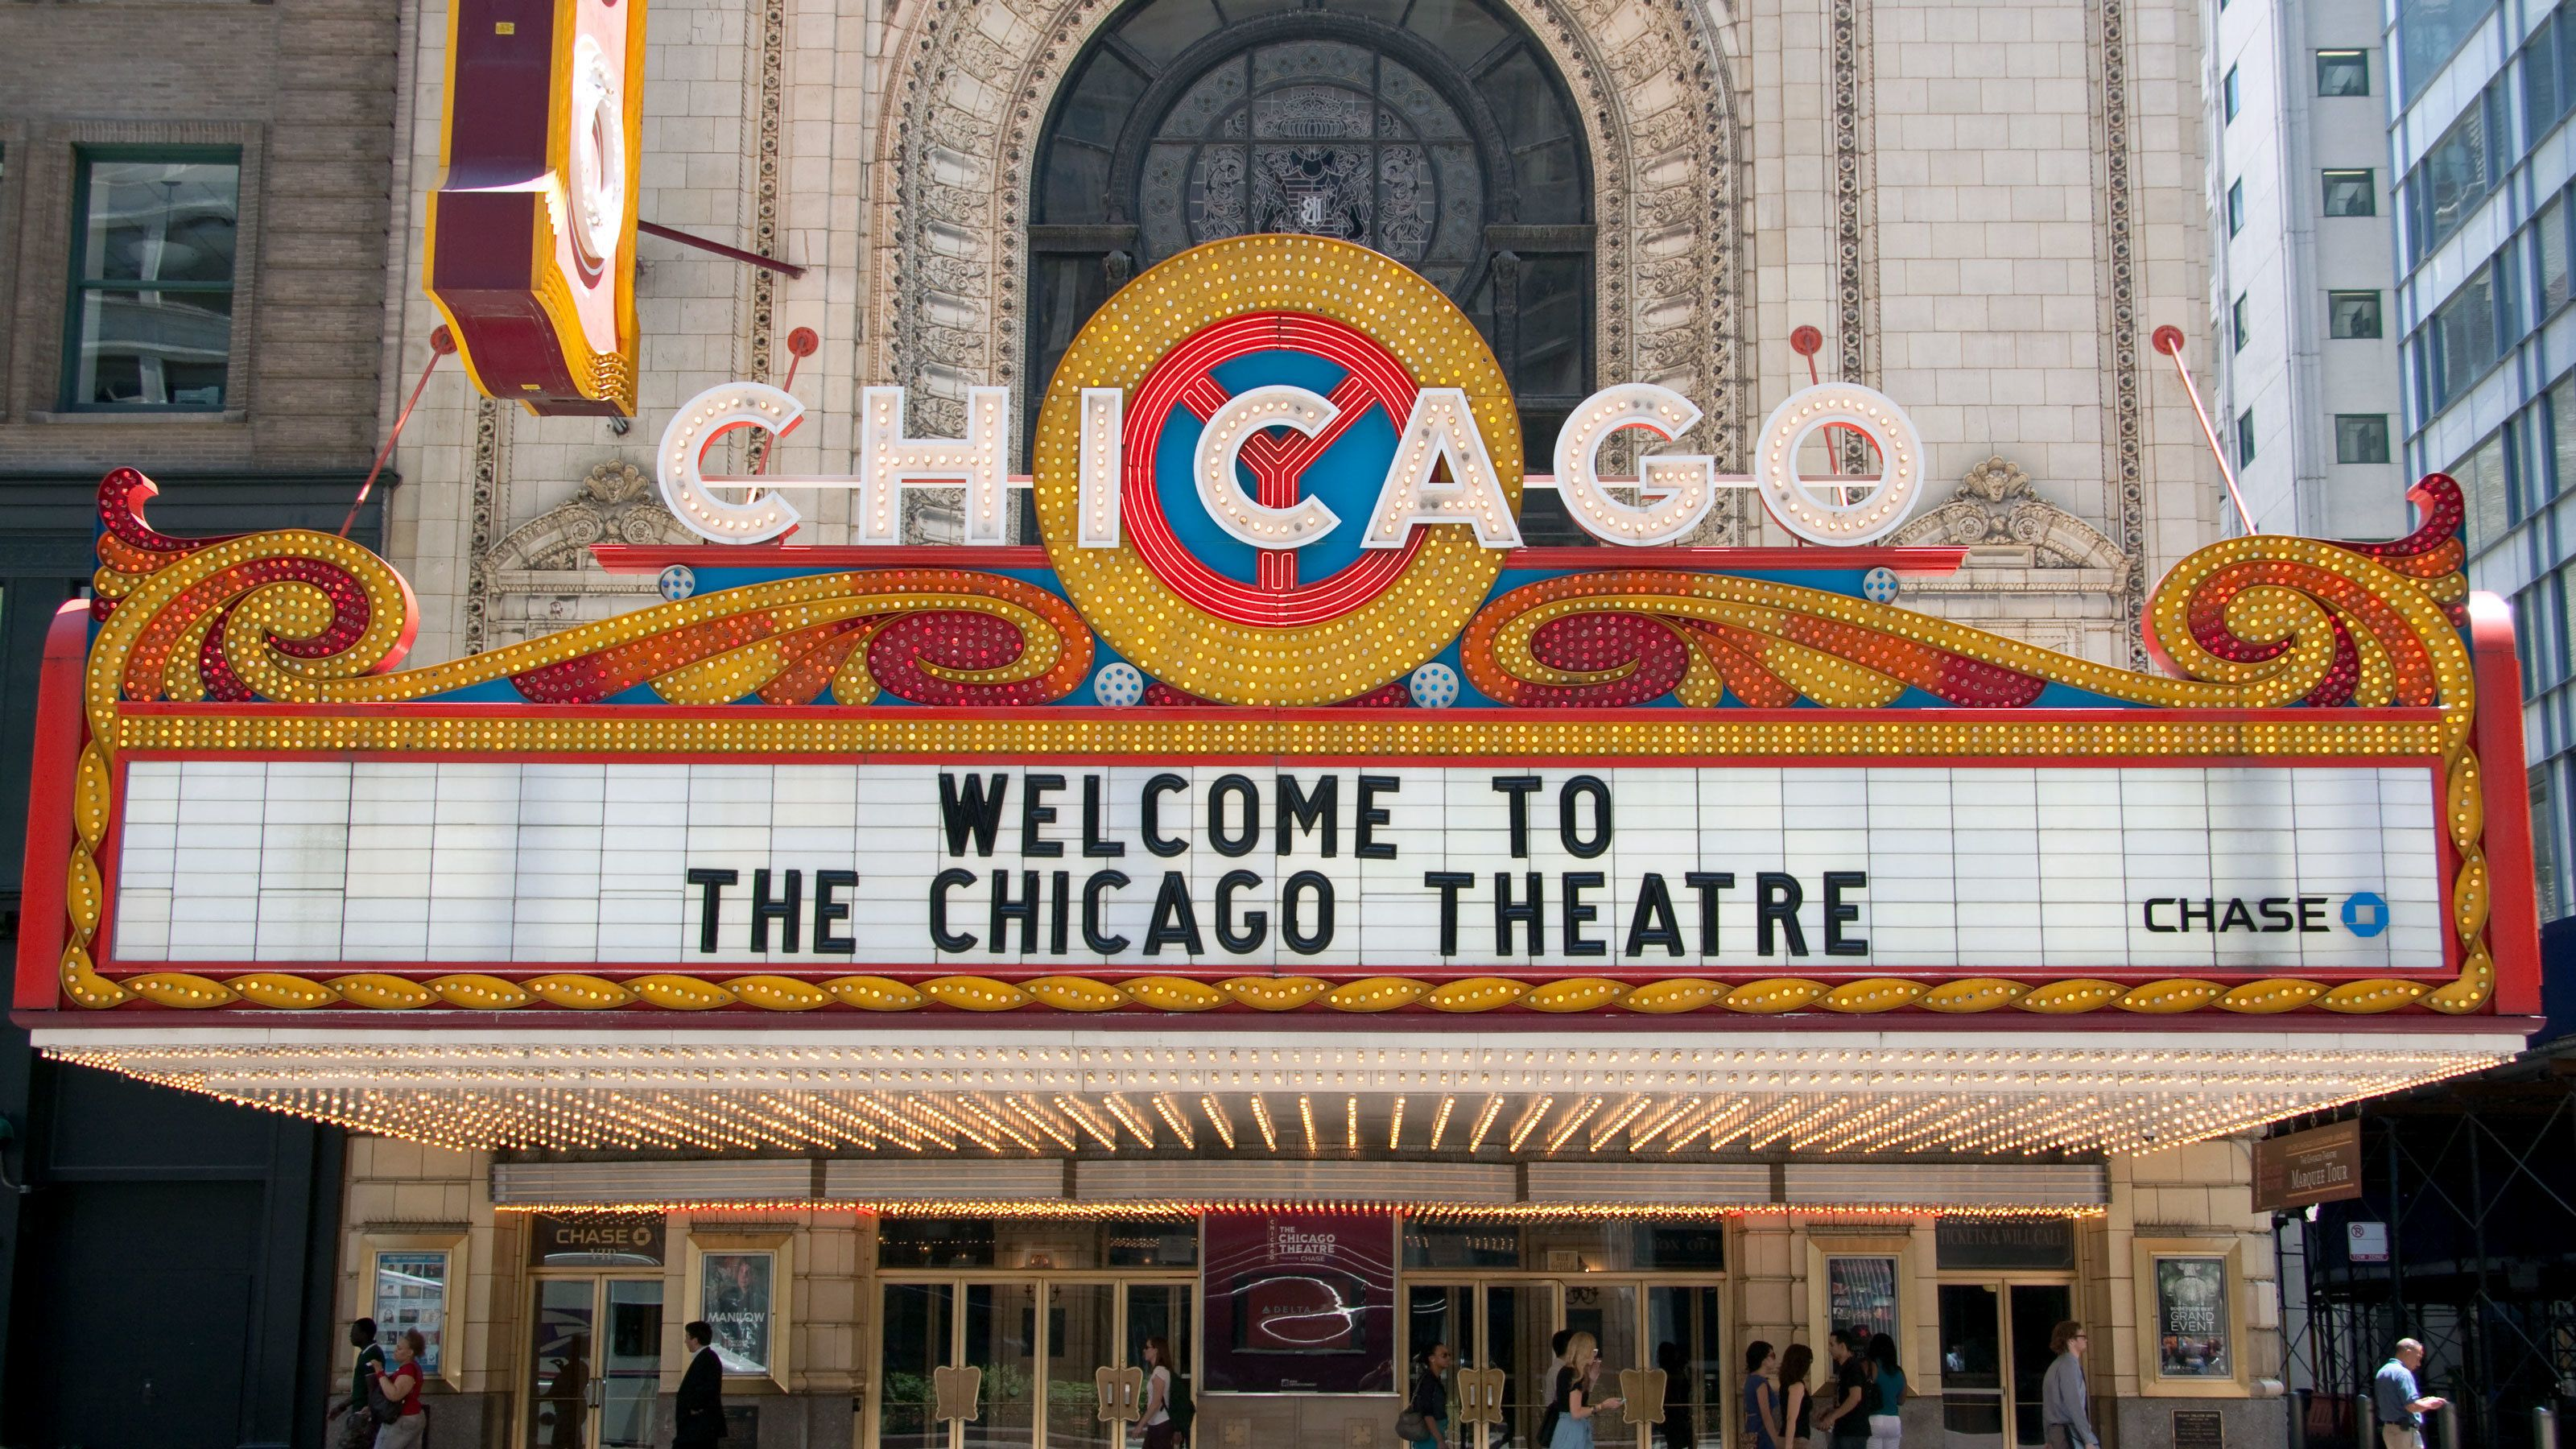 Chicago Theatre Marquee-turen